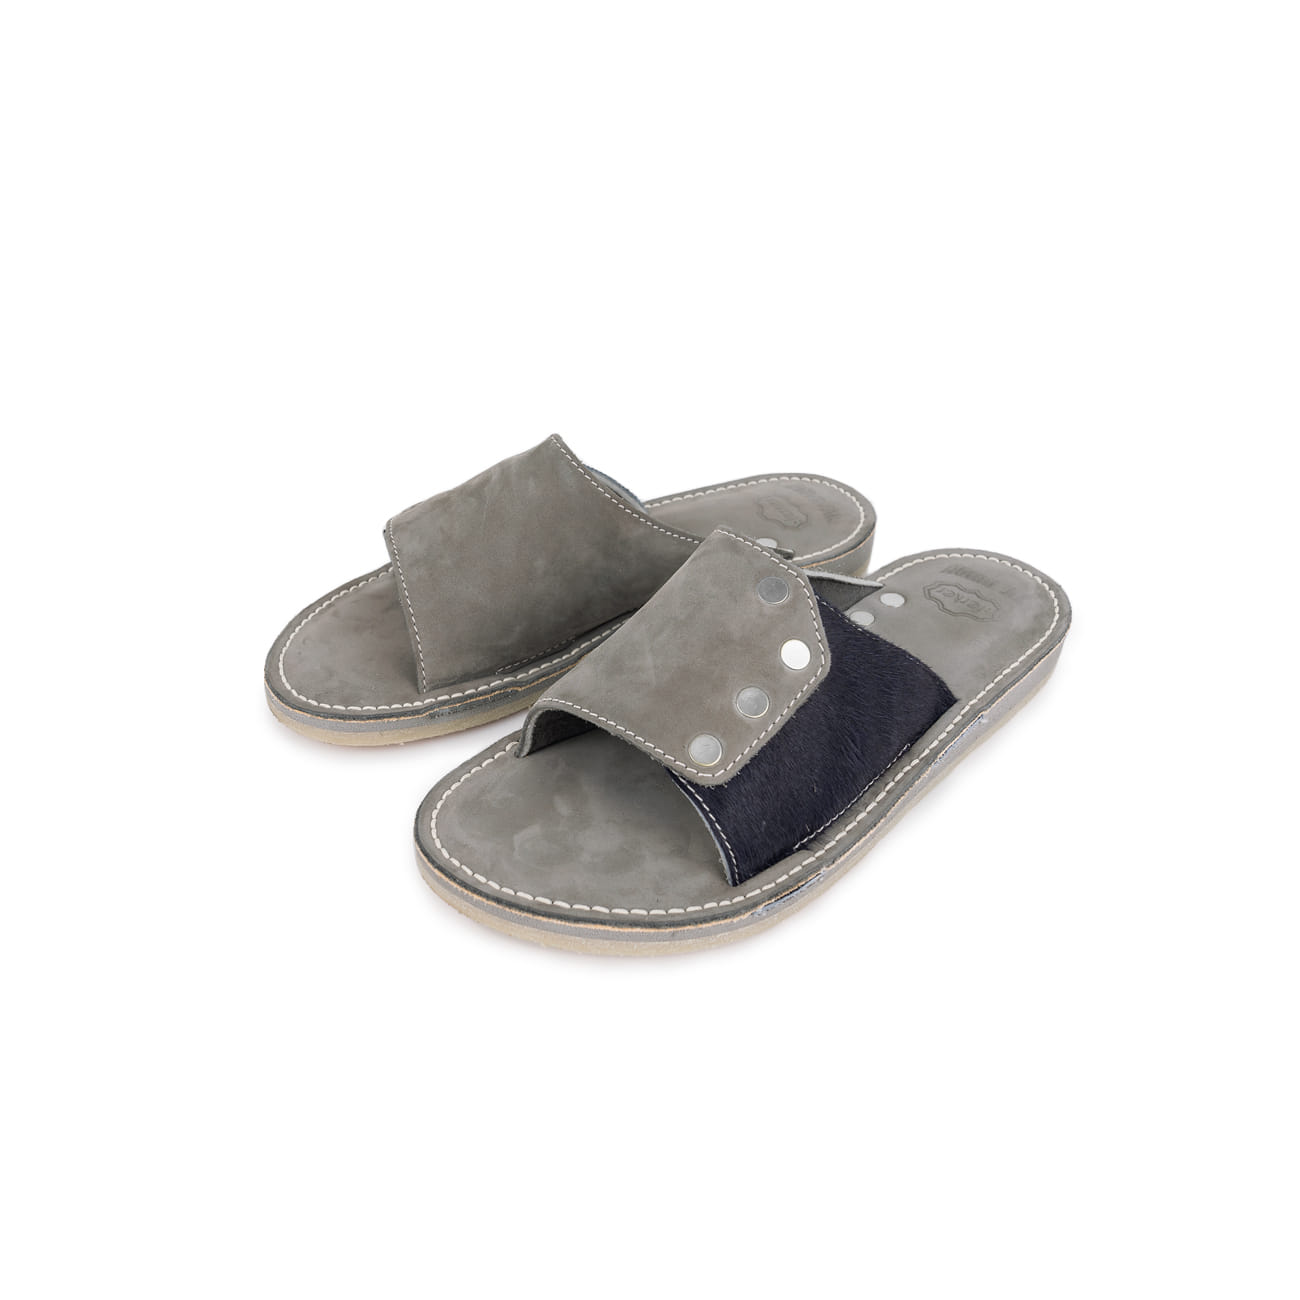 Slide Nickel Rivet Sandal